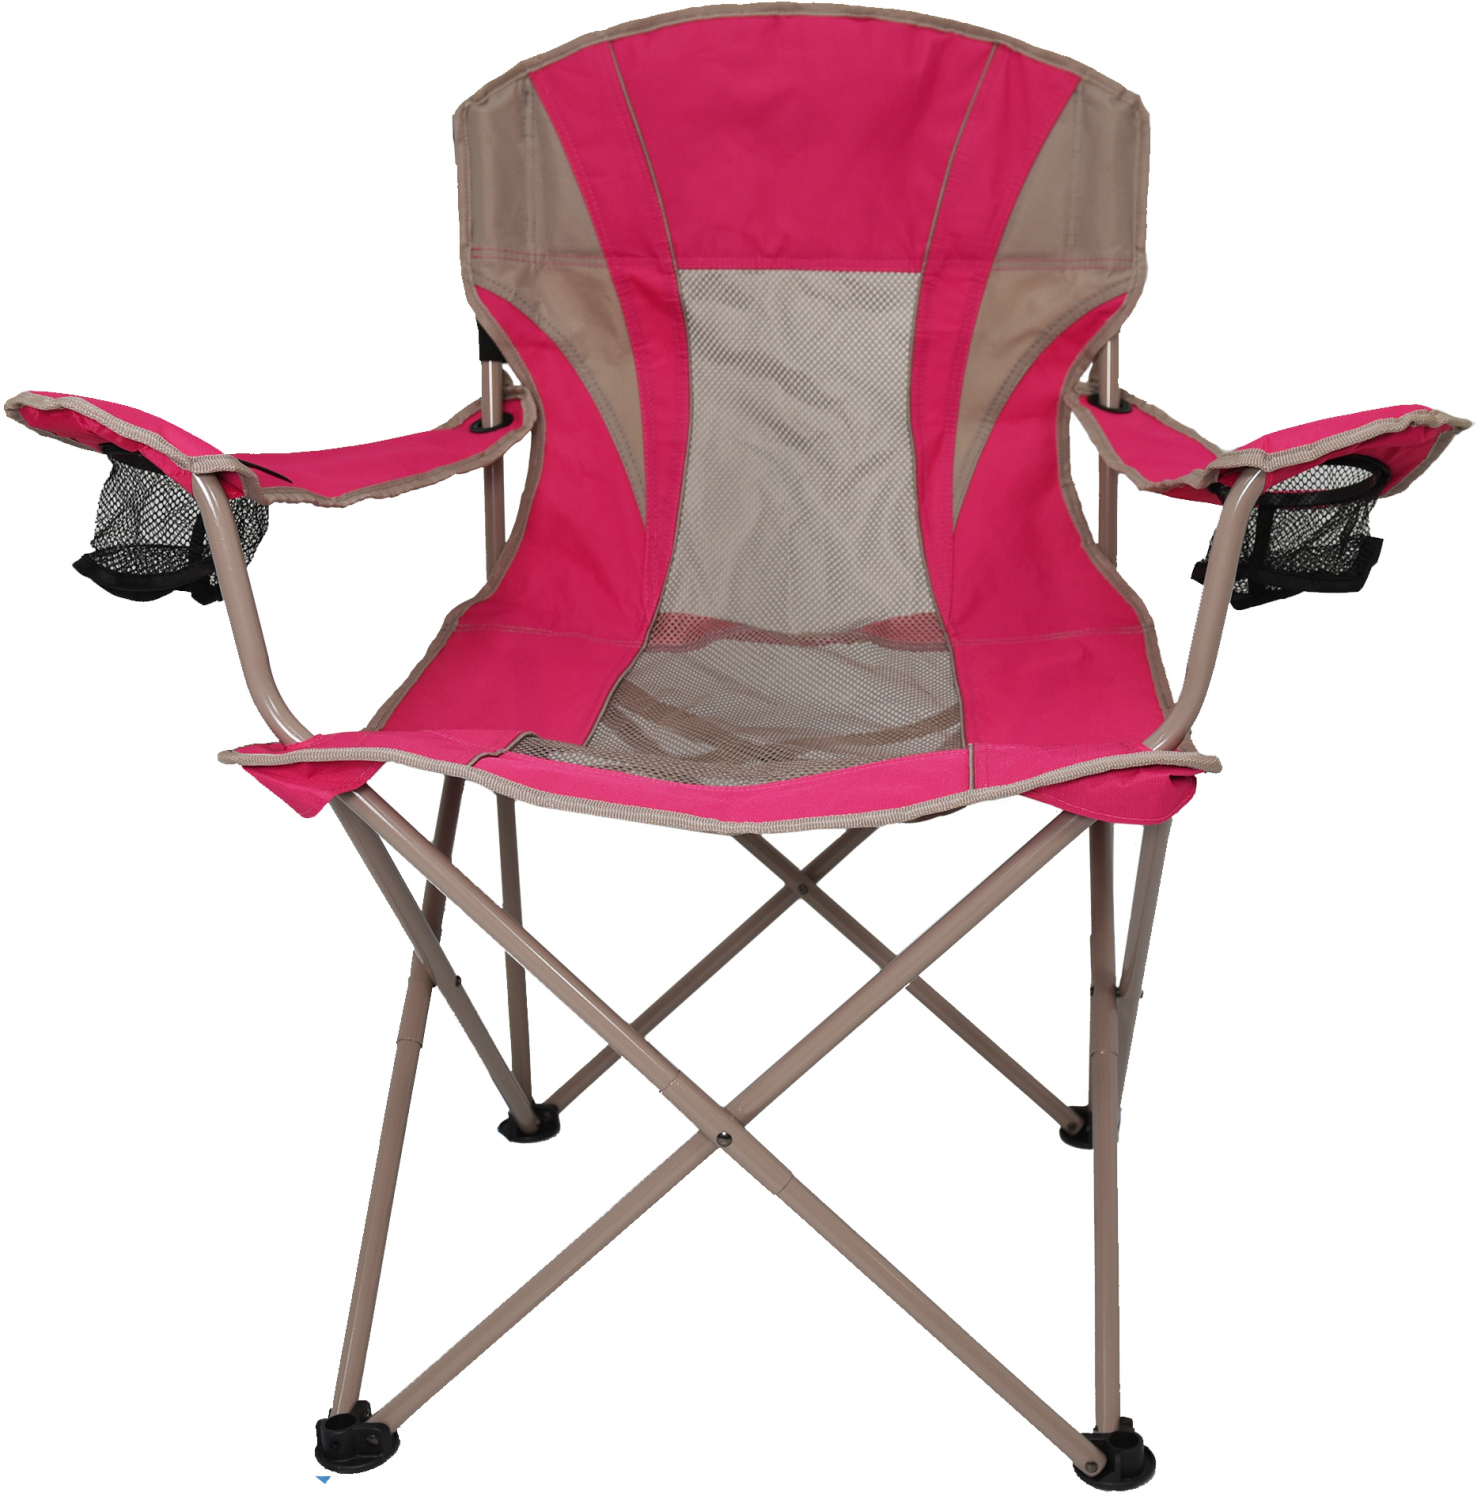 Details About Oversize Mesh Folding Camping Chair Ozark Trail Seat Cup Holder Heavy Duty New